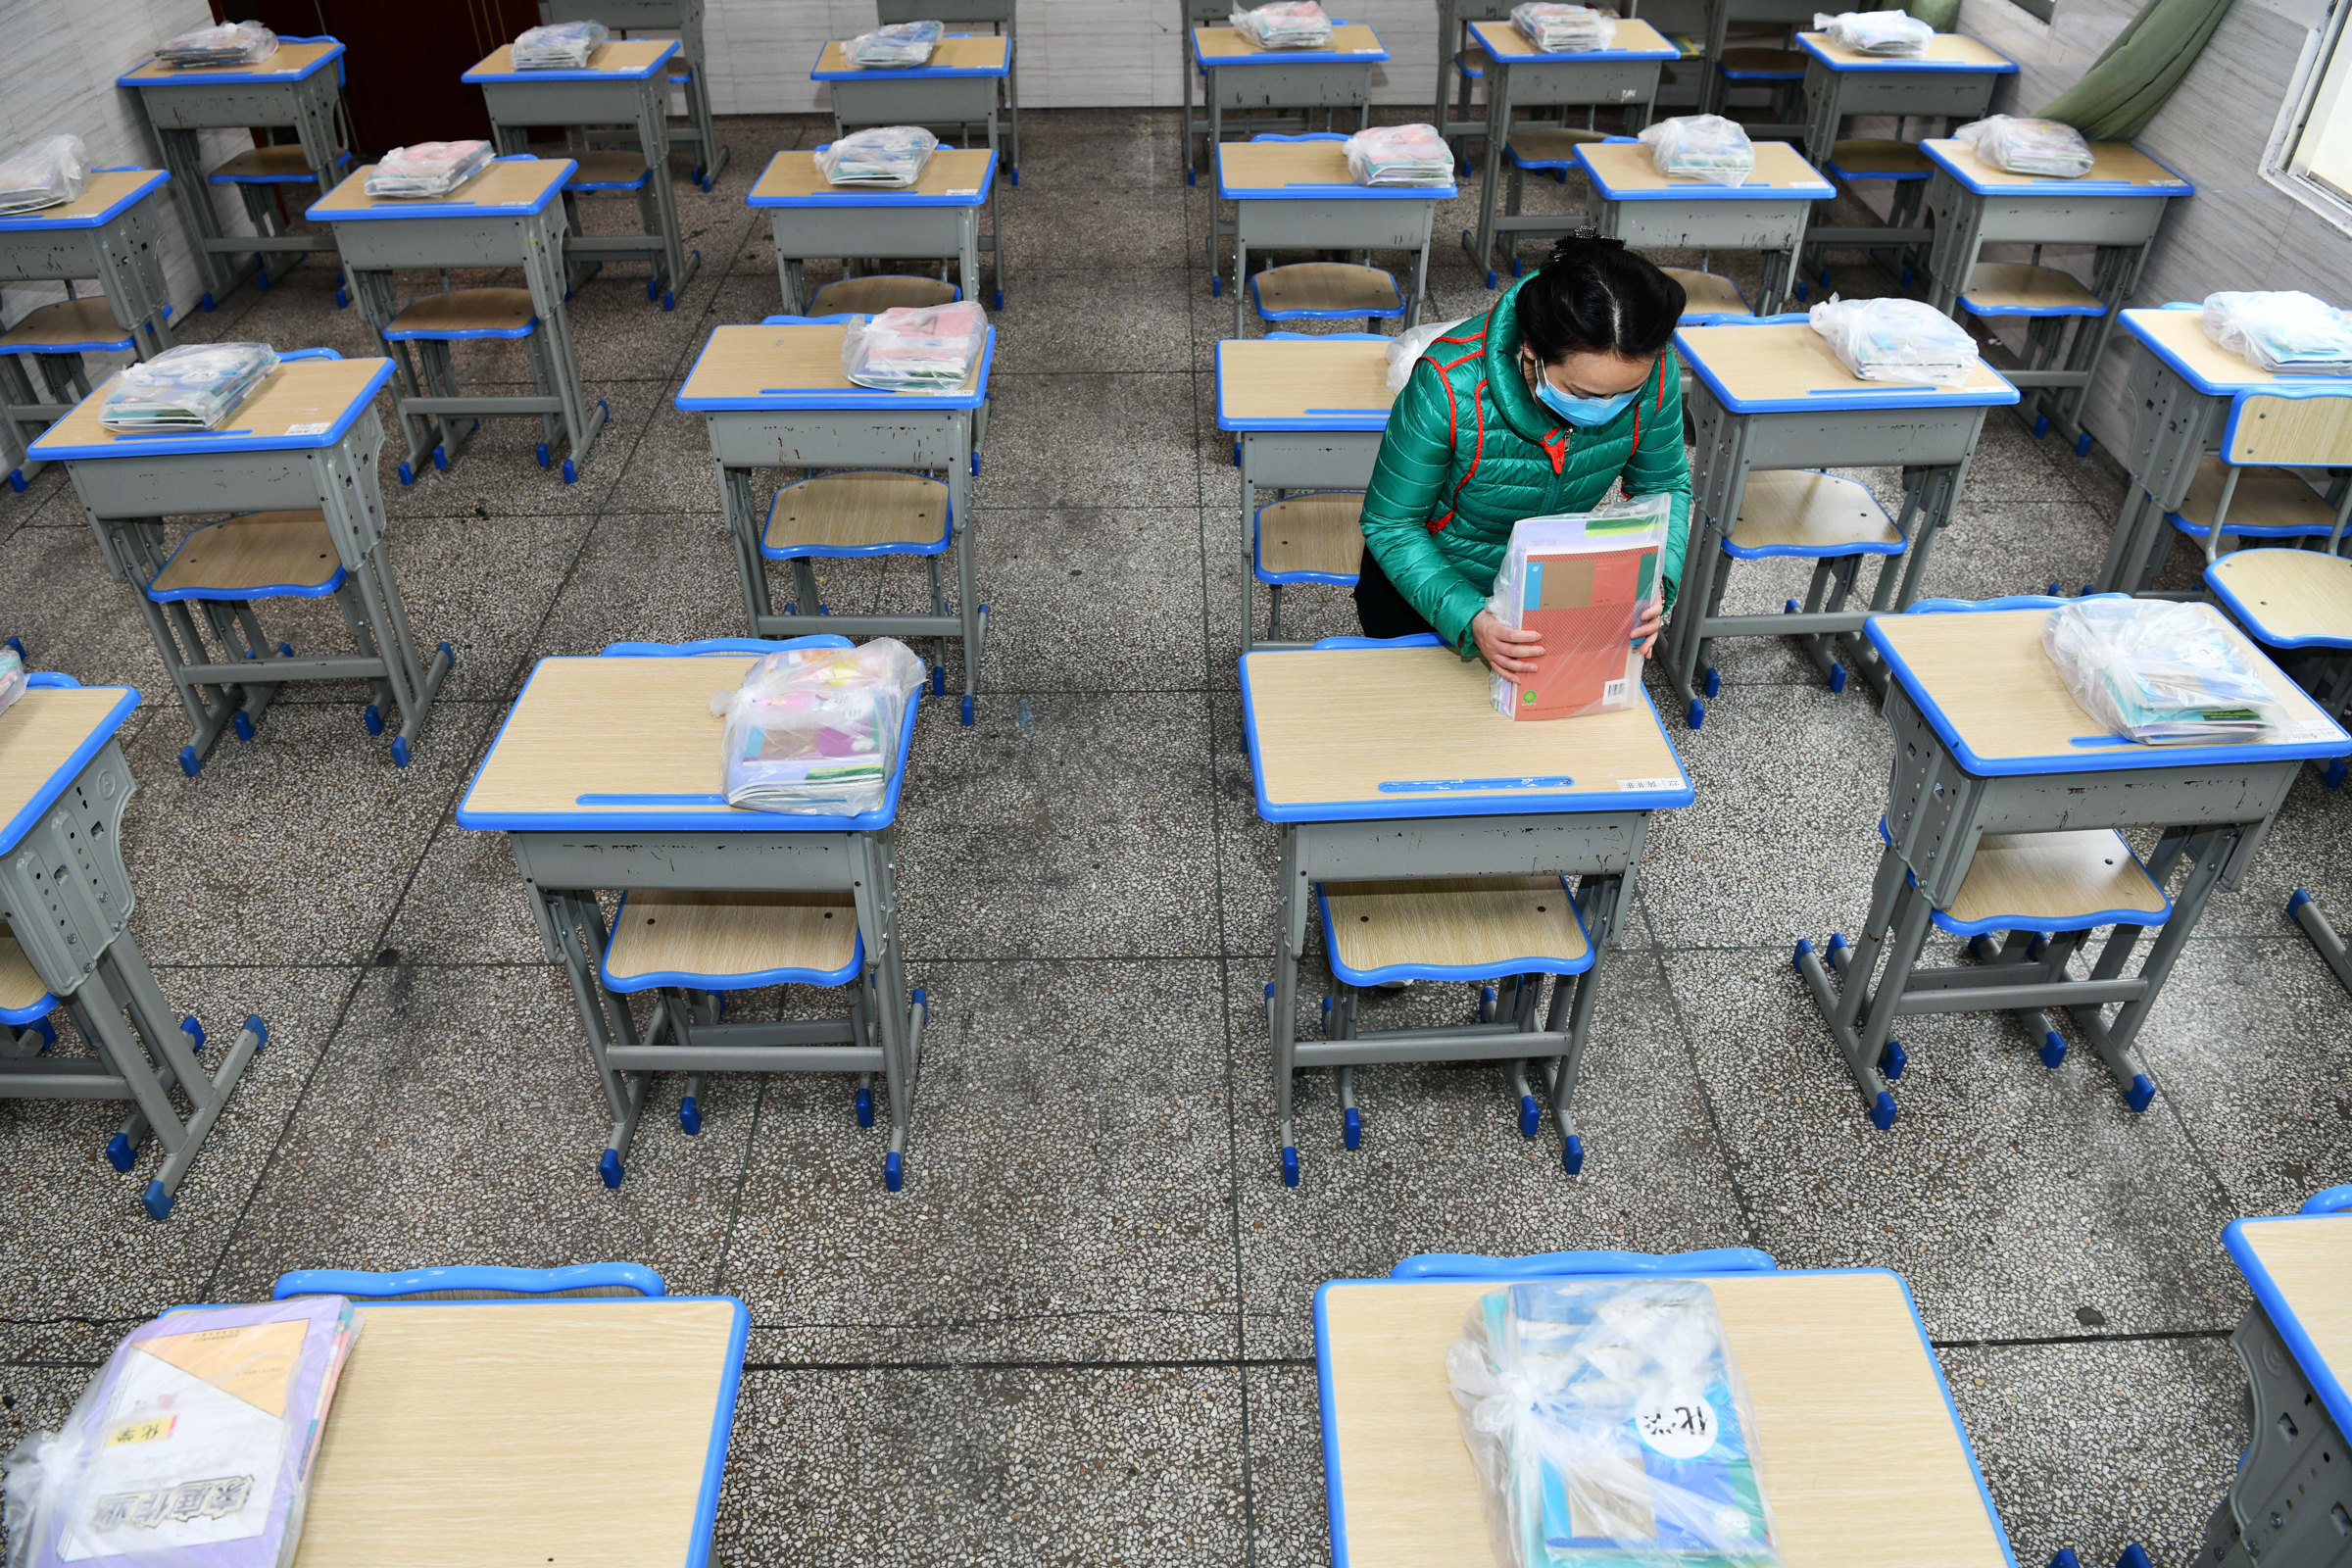 A teacher puts new textbooks on desks in advance for students of grade nine at a school.